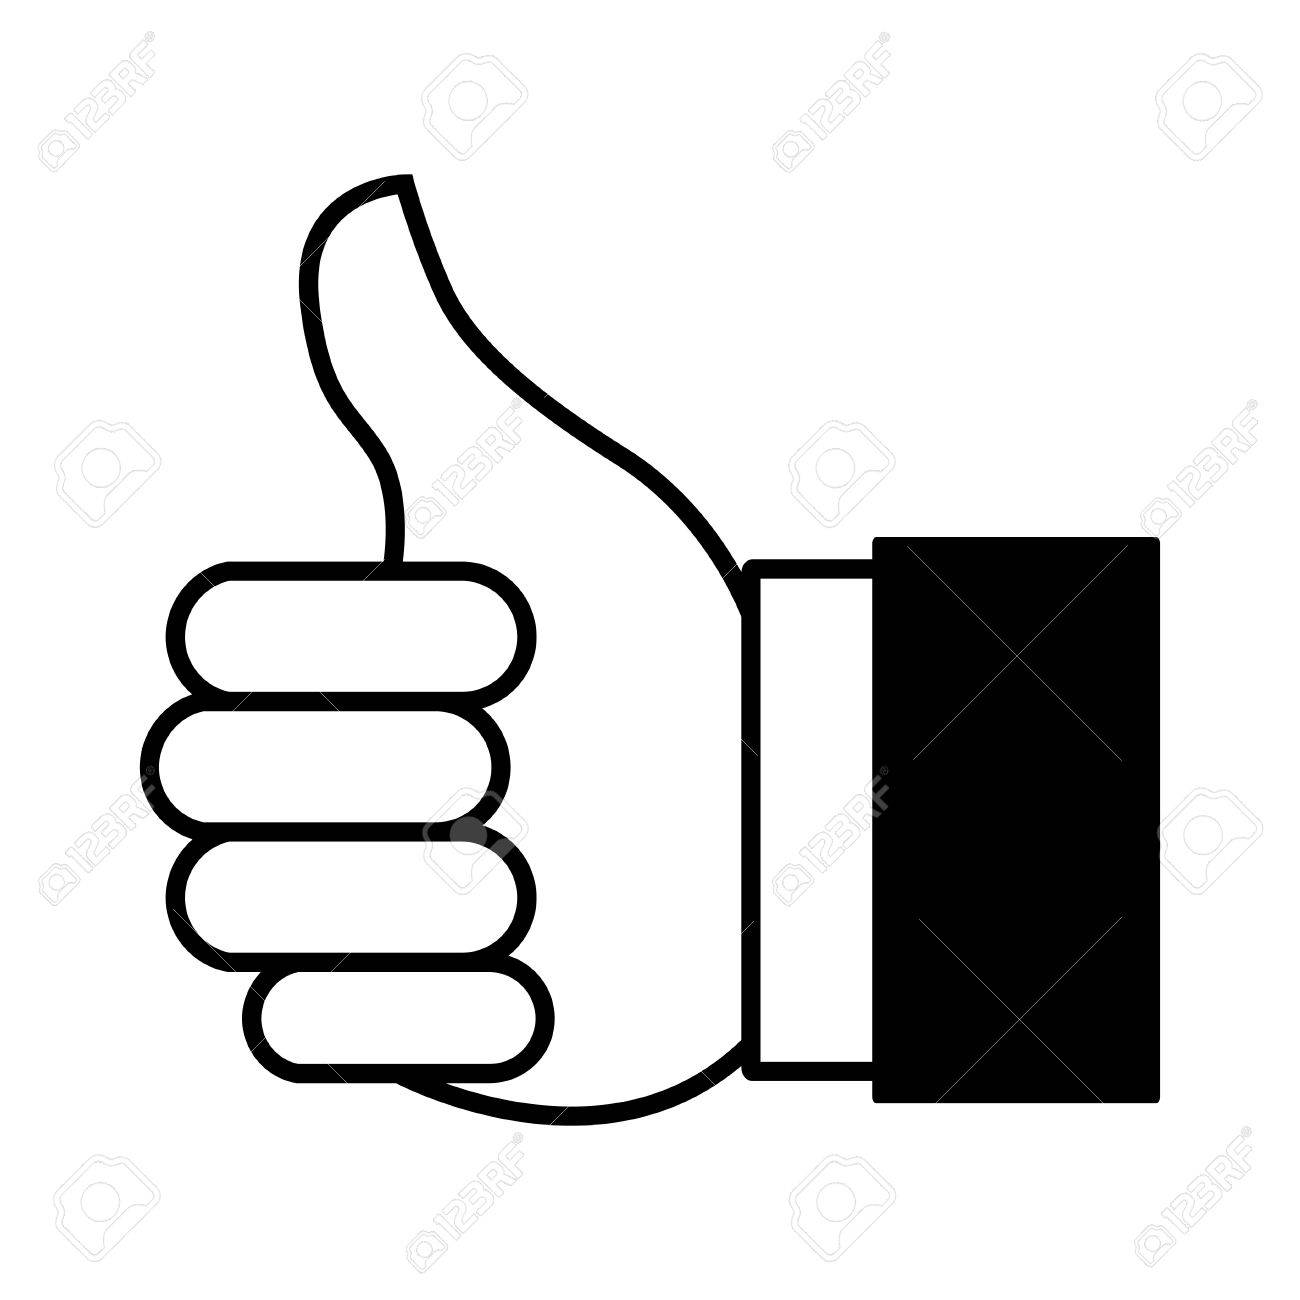 1300x1300 Cartoon Illustration Of Thumbs Up Or Like Hand Gesture For Website